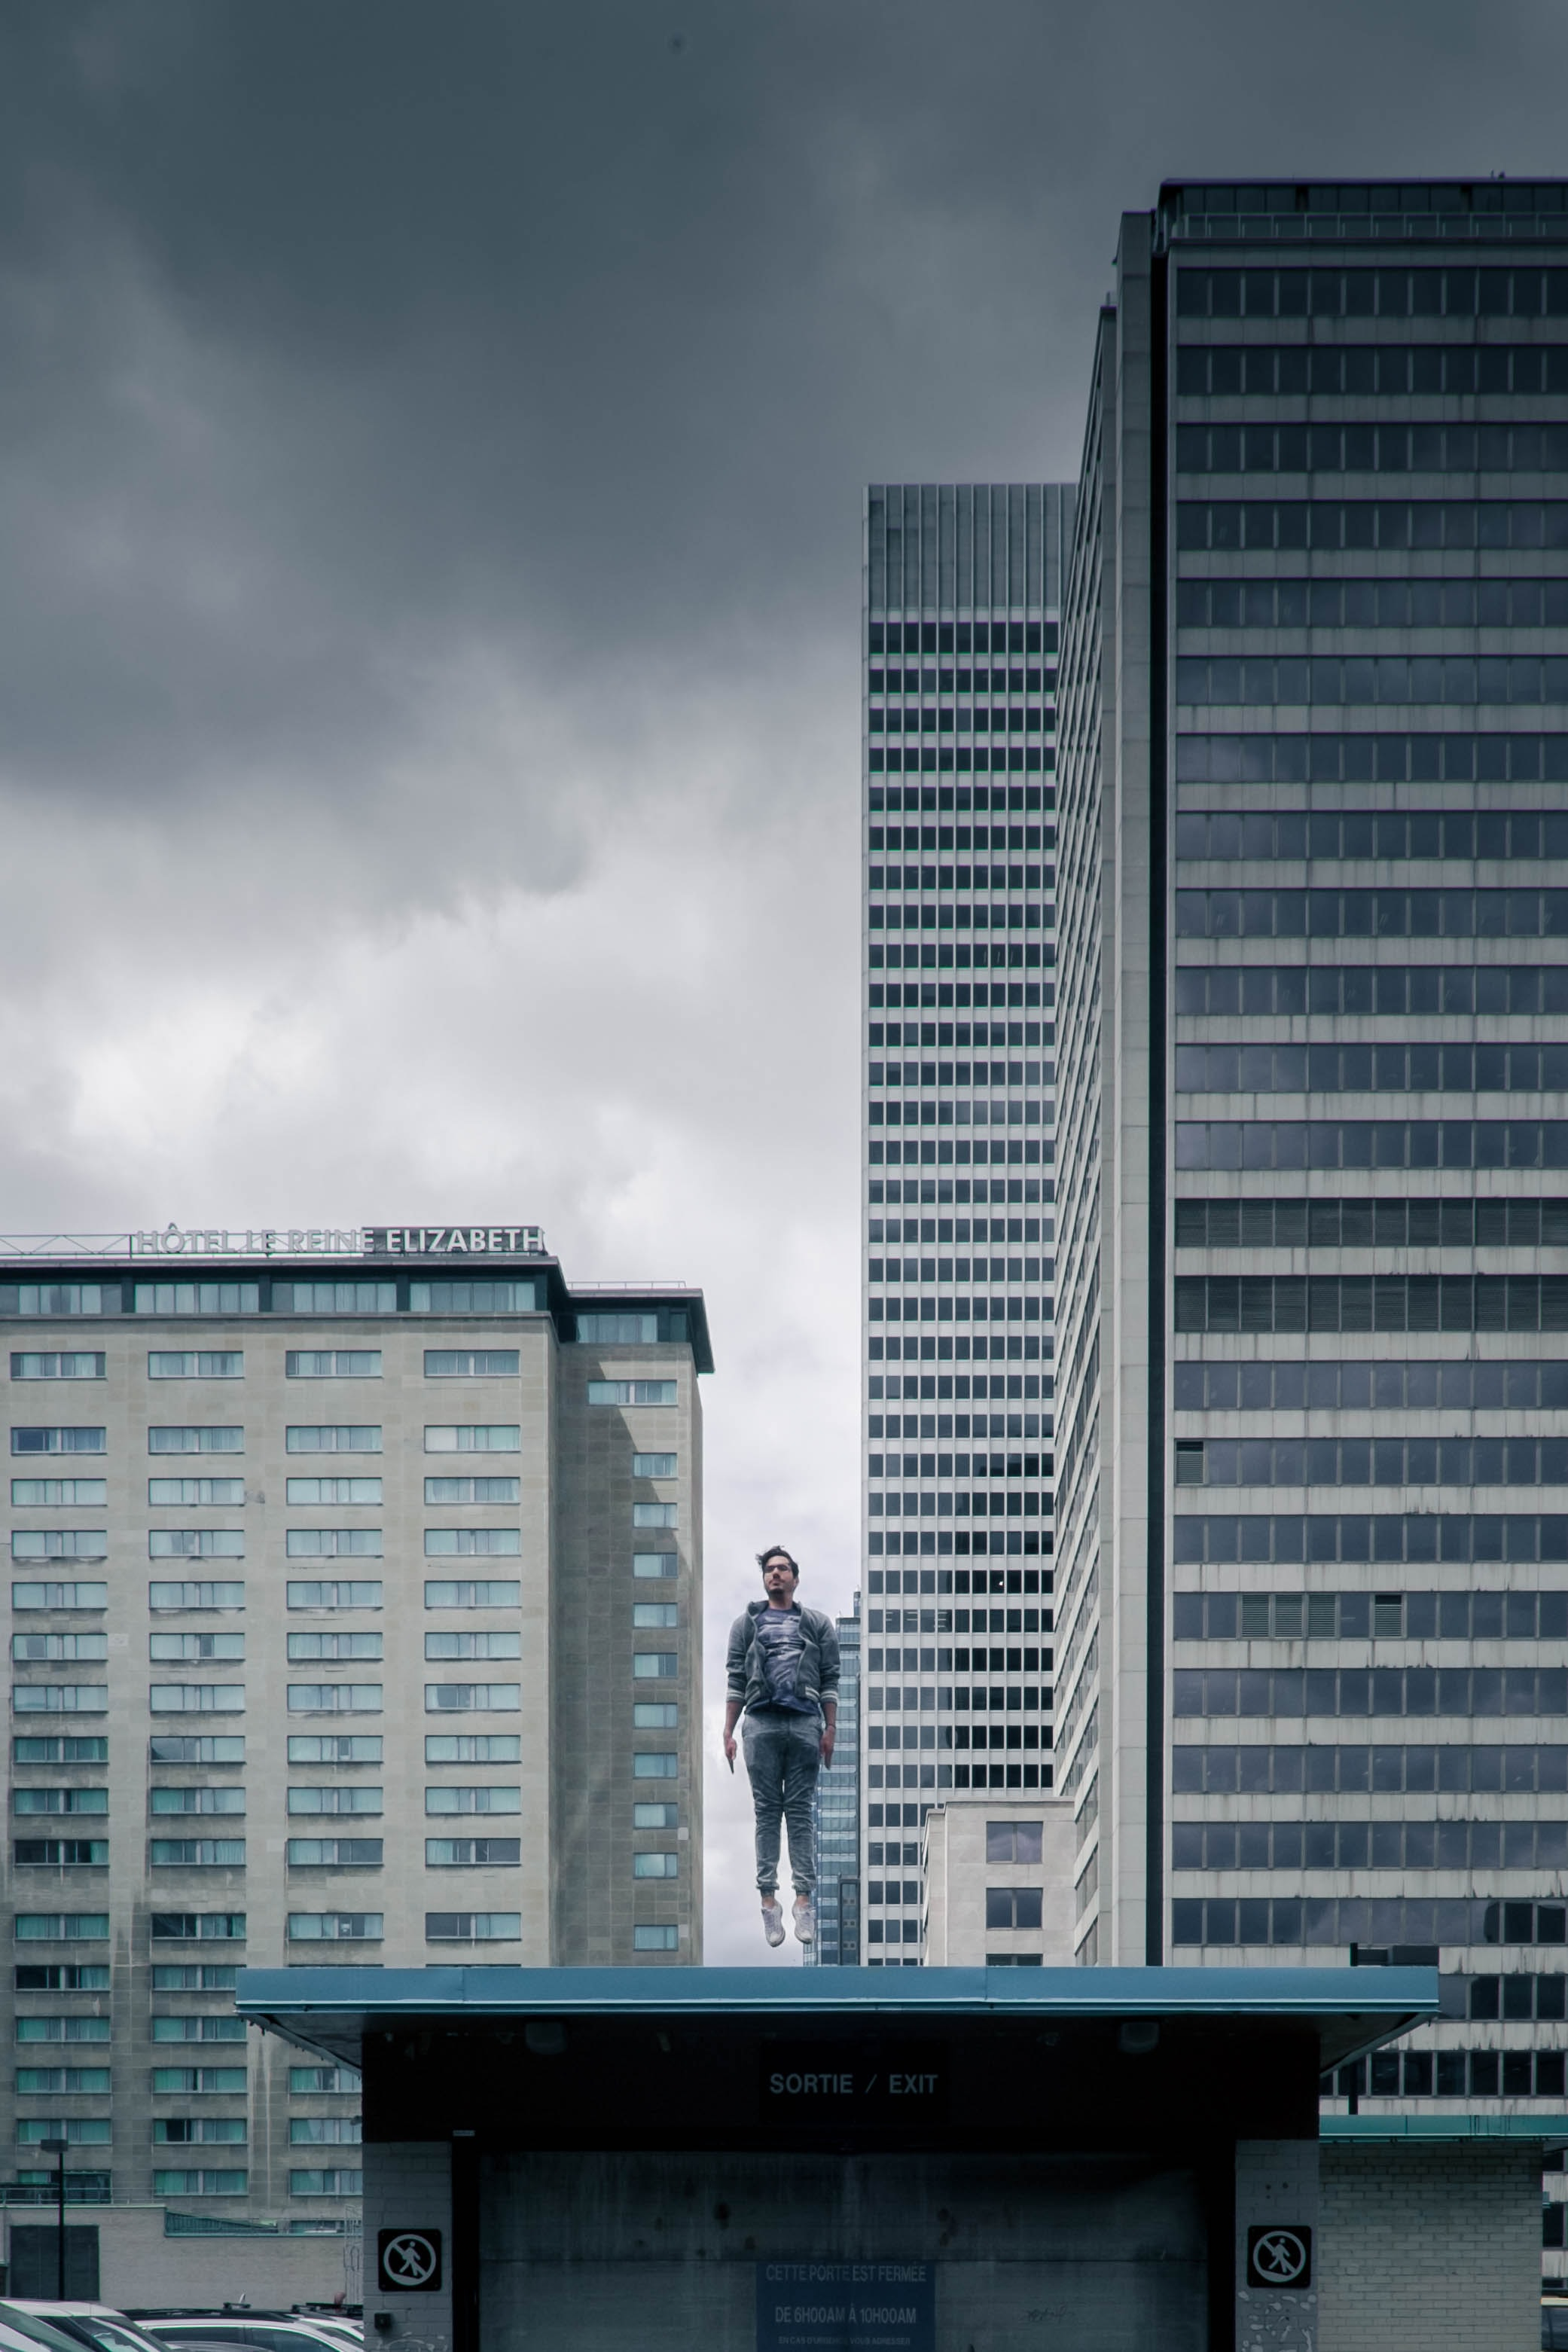 A blurry man standing on top of an urban skyscraper intends to jump